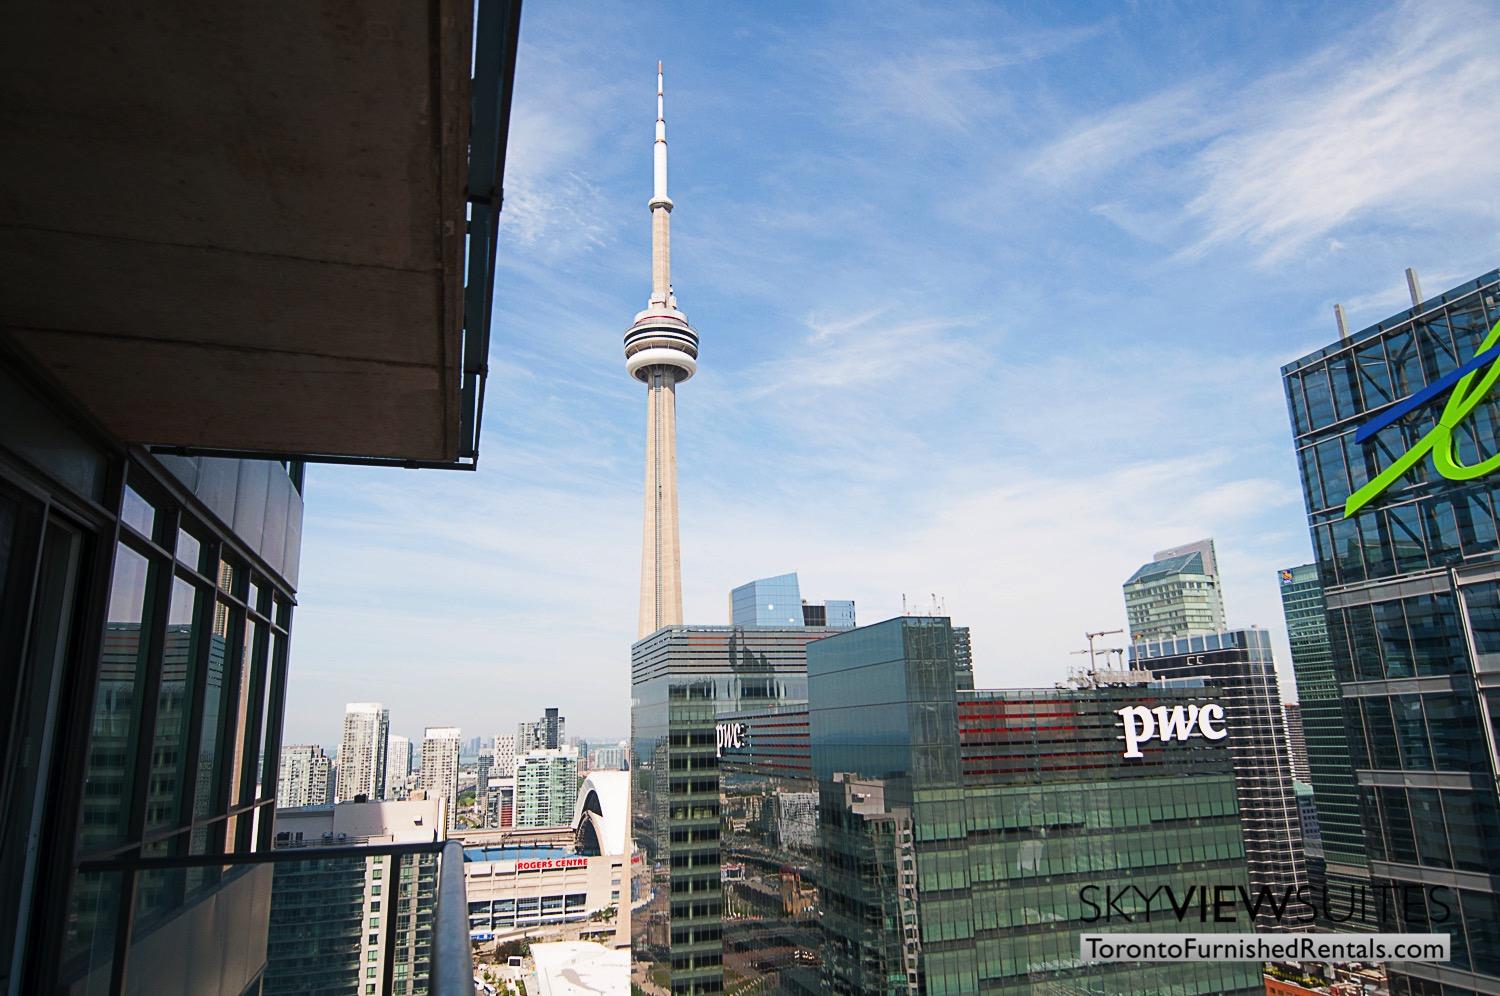 MLS furnished condo toronto cn tower